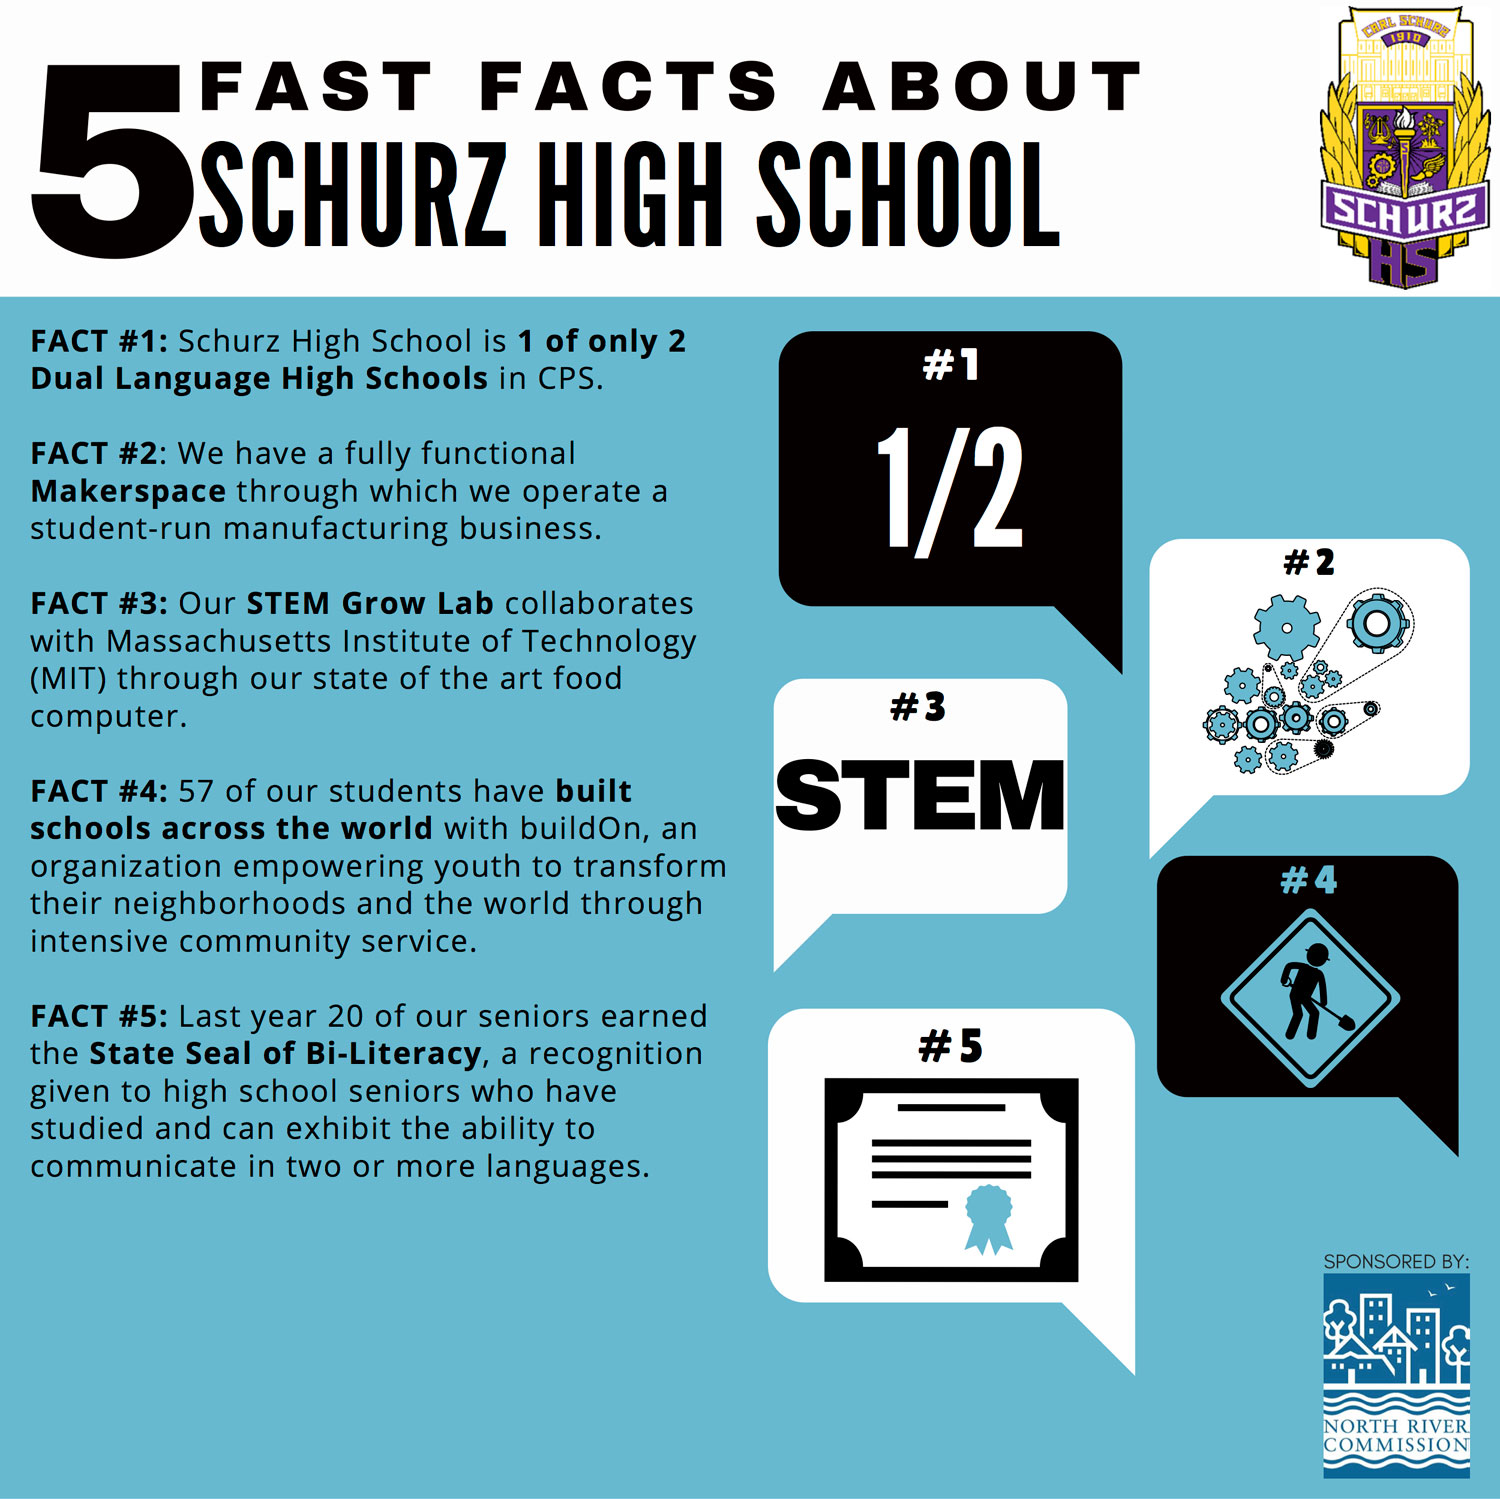 5-Facts-Campaign_Schurz_English-sm